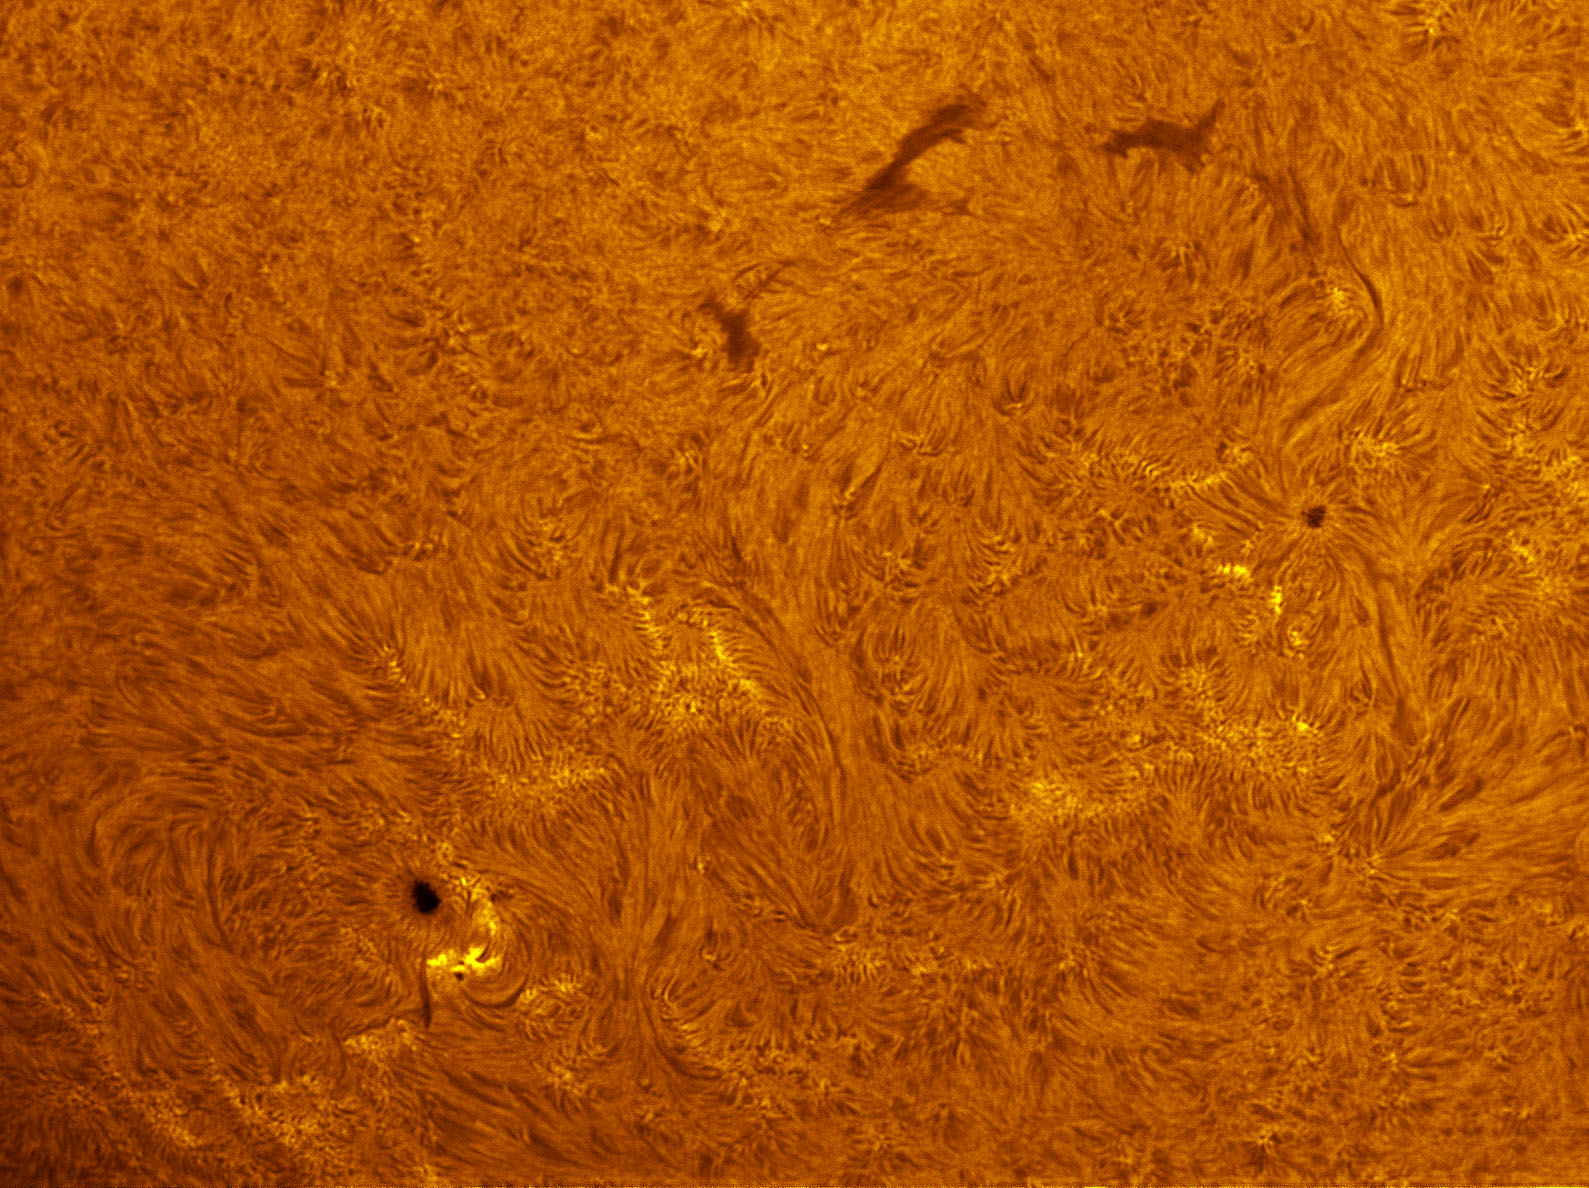 Sunspots 1552 and 1553 in h-alpha 08/25/2012